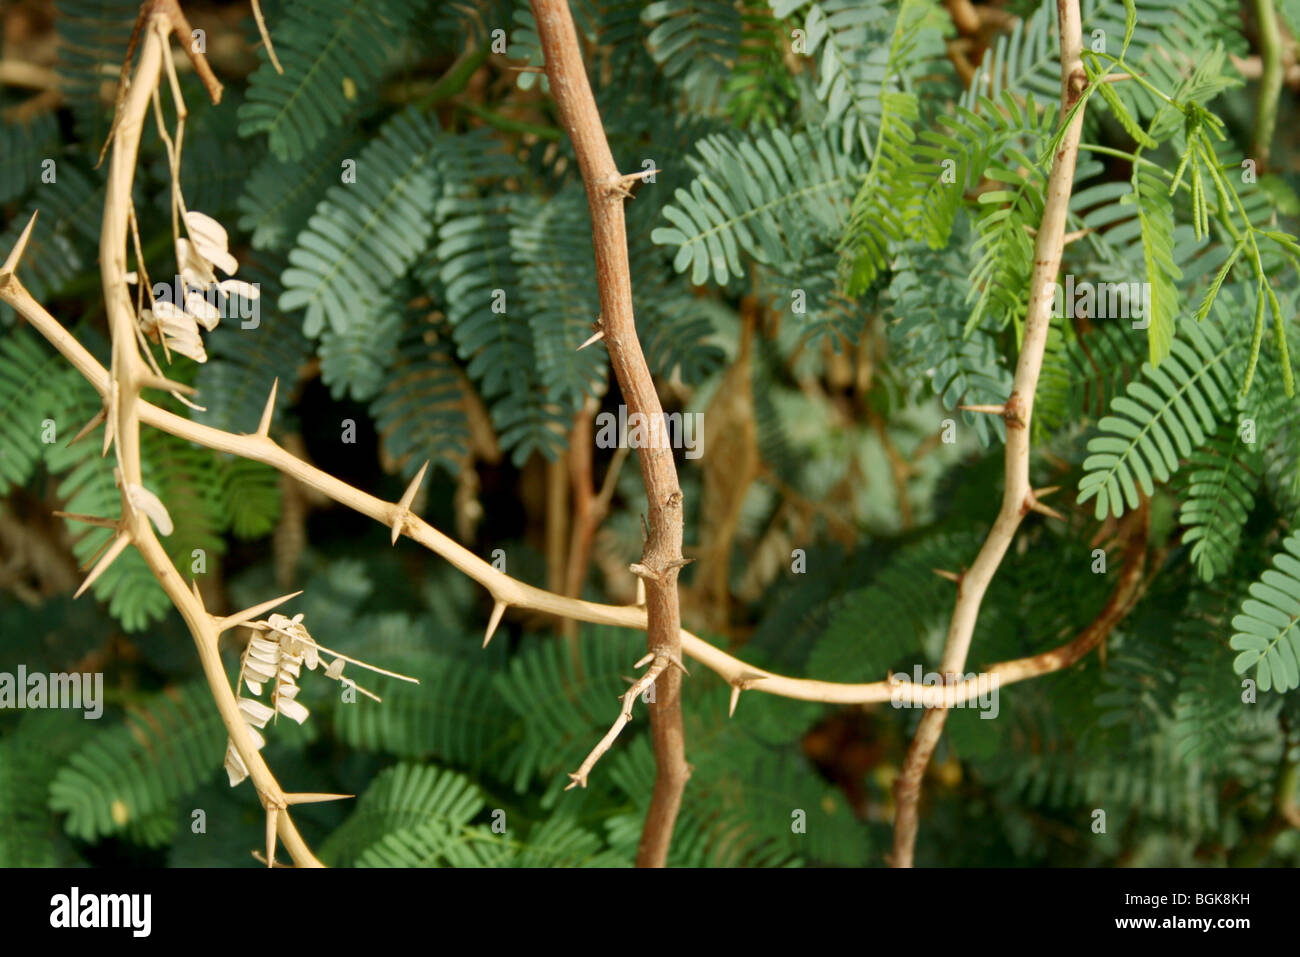 Meshed in problems - Stock Image